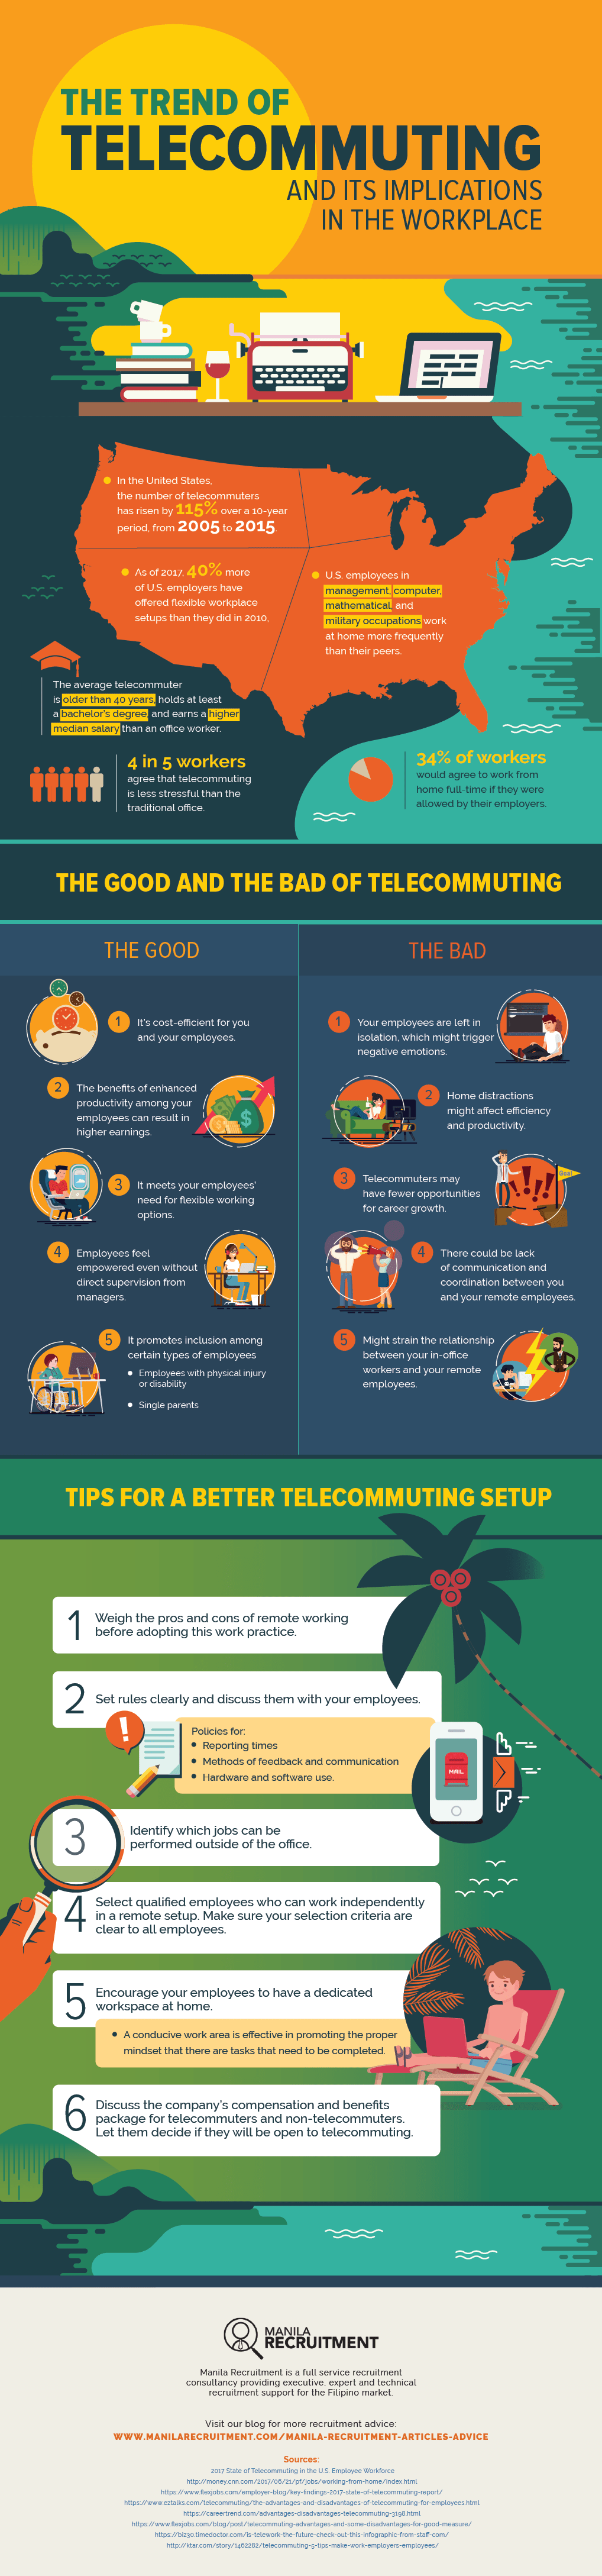 The Trend of Telecommuting and its Implications in the Workplace, manila recruitment, telecommuting infographic, benefits of telecommuting, telecommuting explained